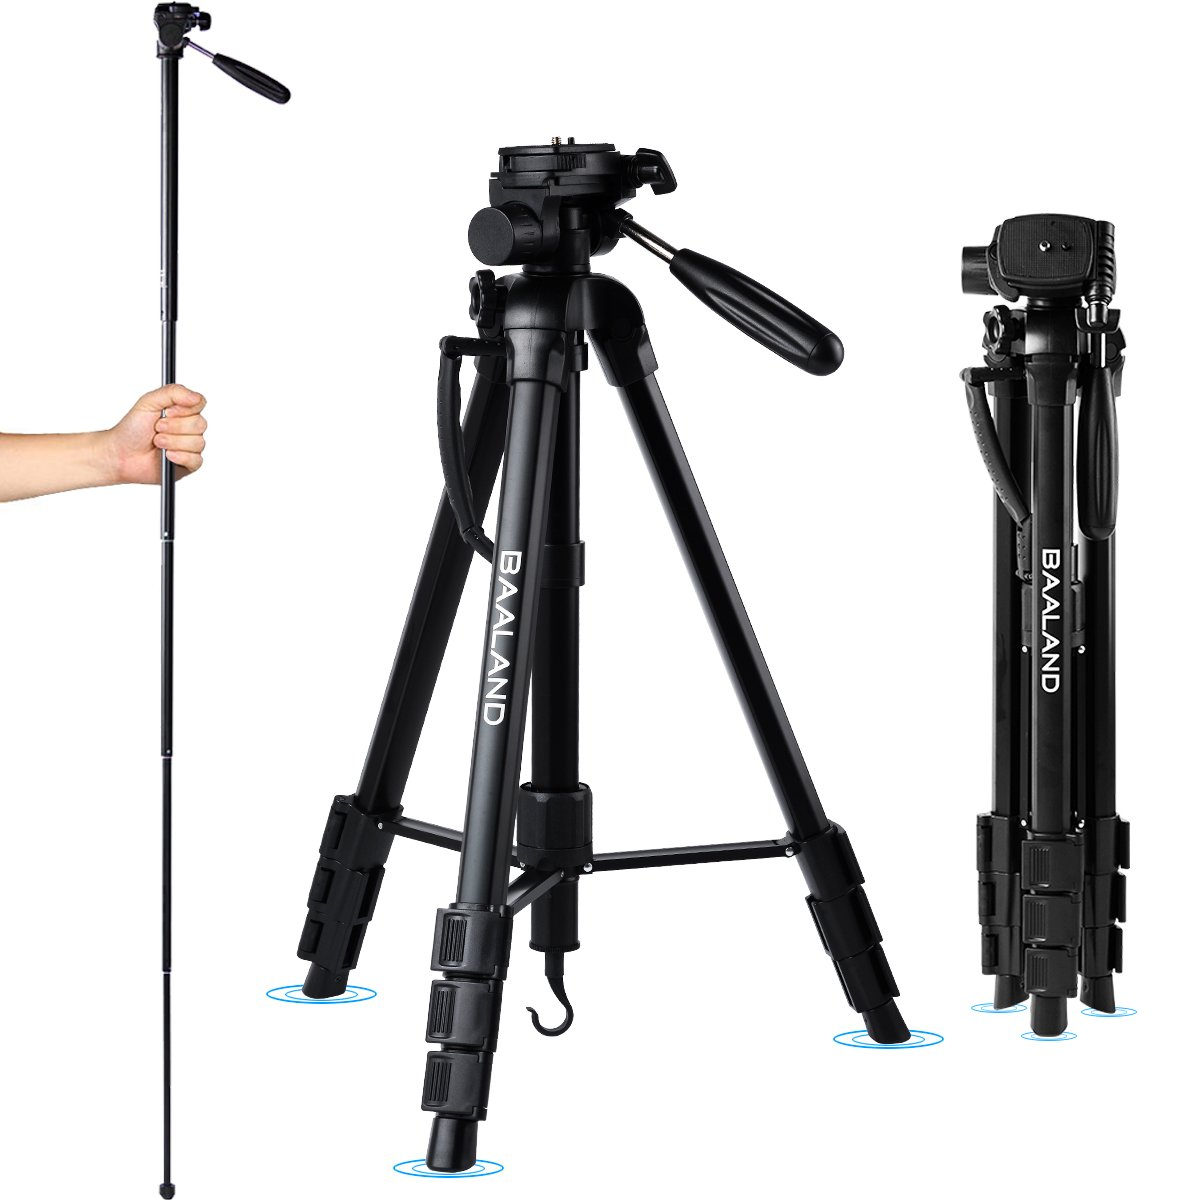 BAALAND Camera Tripod, 70 inch Folding Lightweight Aluminum Tripod with Carry Bag for Canon Nikon DSLR SLR